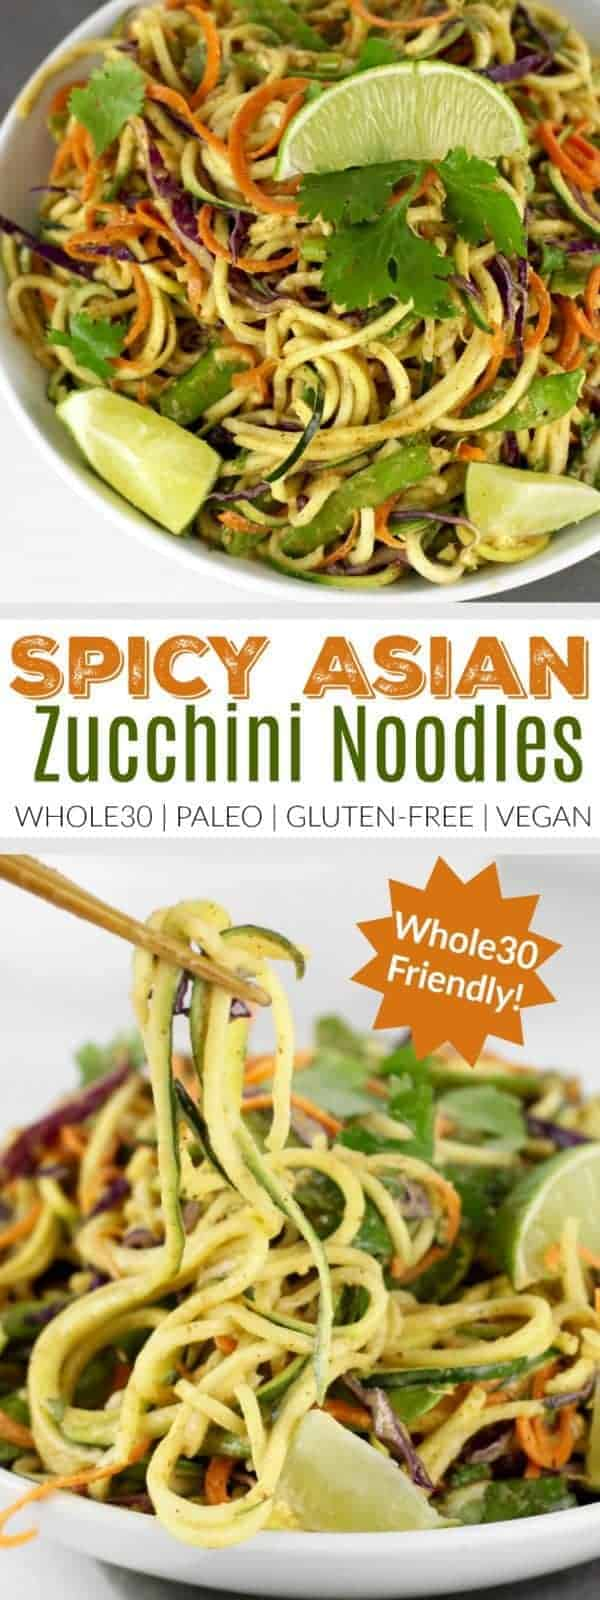 Spicy Asian Zucchini Noodles | zucchini noodle recipes | how to make zucchini noodles | healthy dinner recipes | healthy asian inspired dishes | Whole30 approved recipes | Whole30 dinner recipes | Whole30 meal ideas | paleo dinner recipes | gluten free dinner recipes | vegan dinner recipes || The Real Food Dietitians